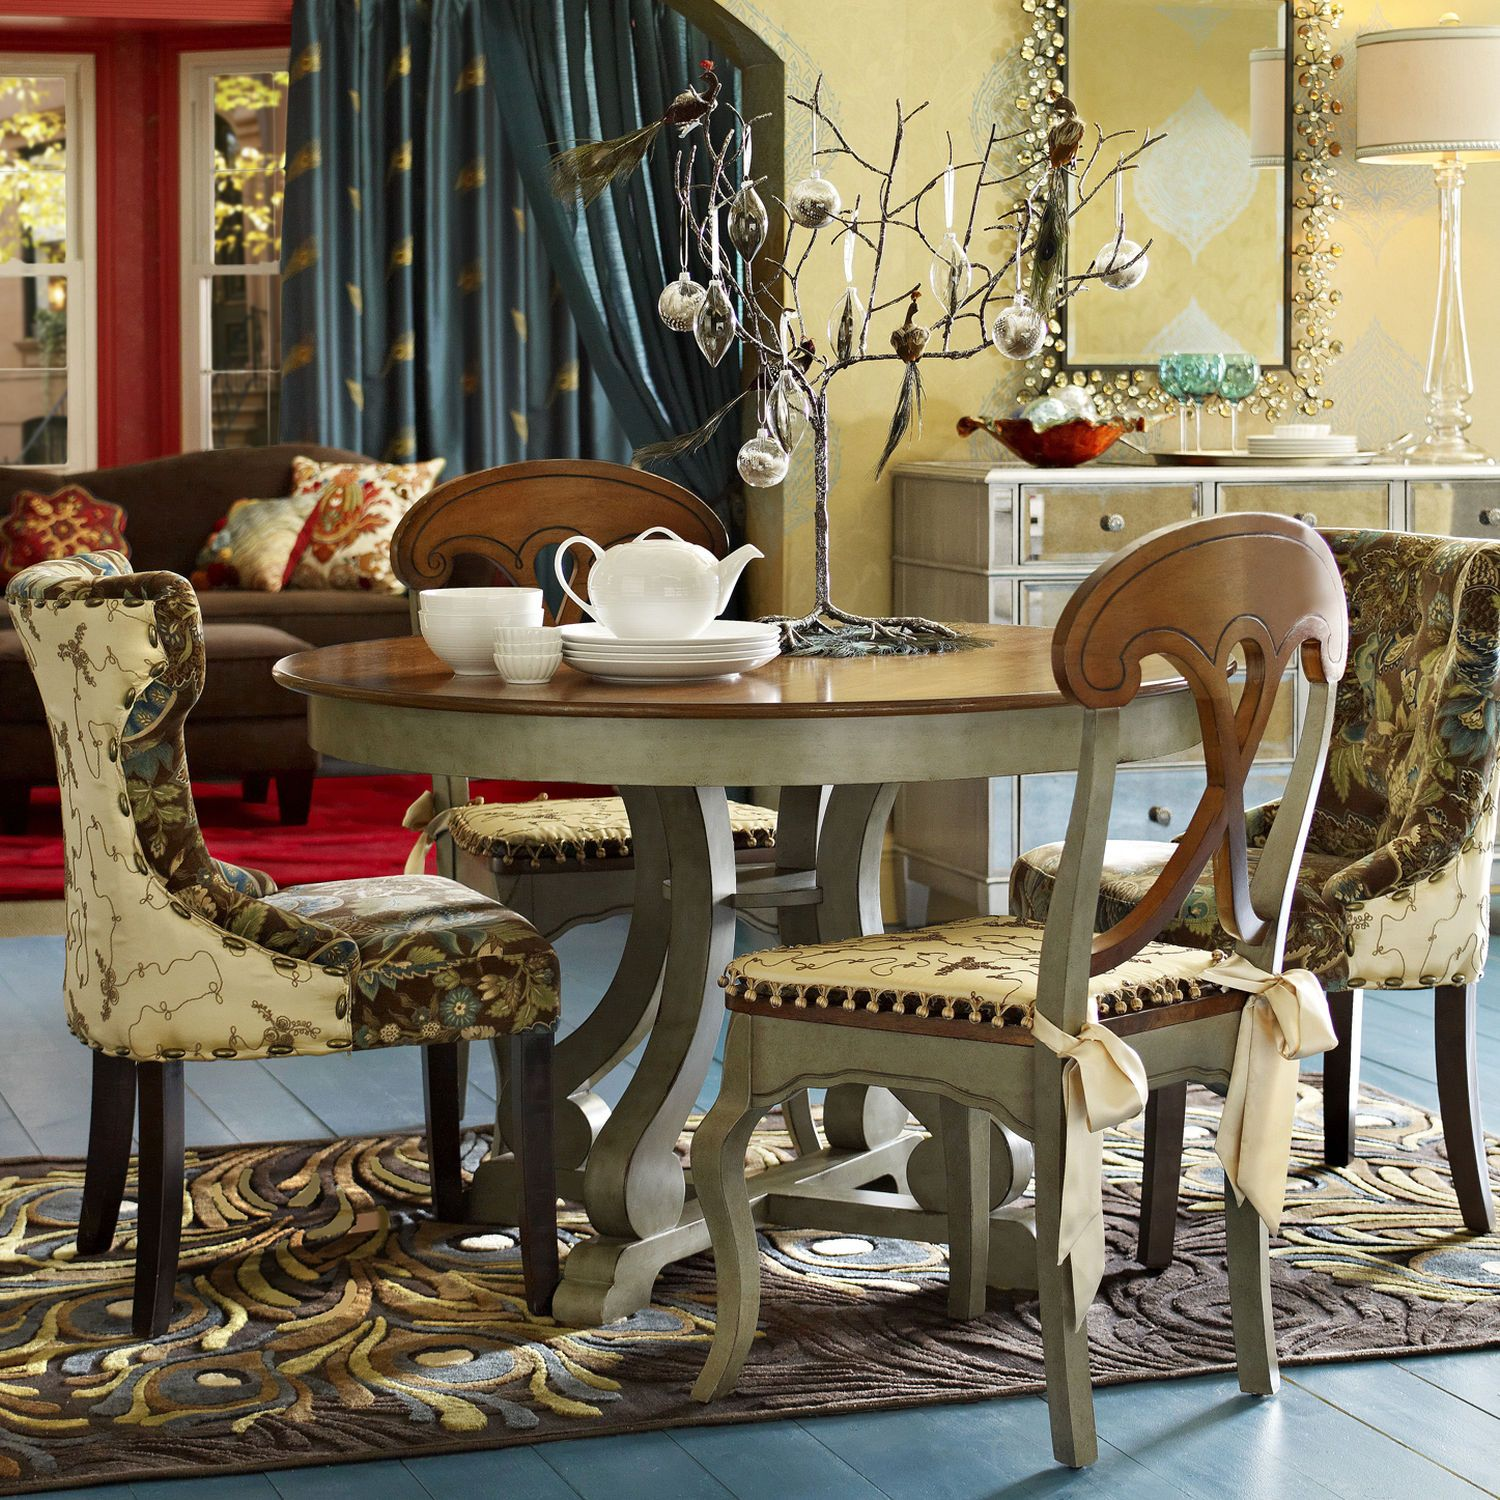 Marchella Sage Round Dining Table | Dining chairs, Kitchens and ...